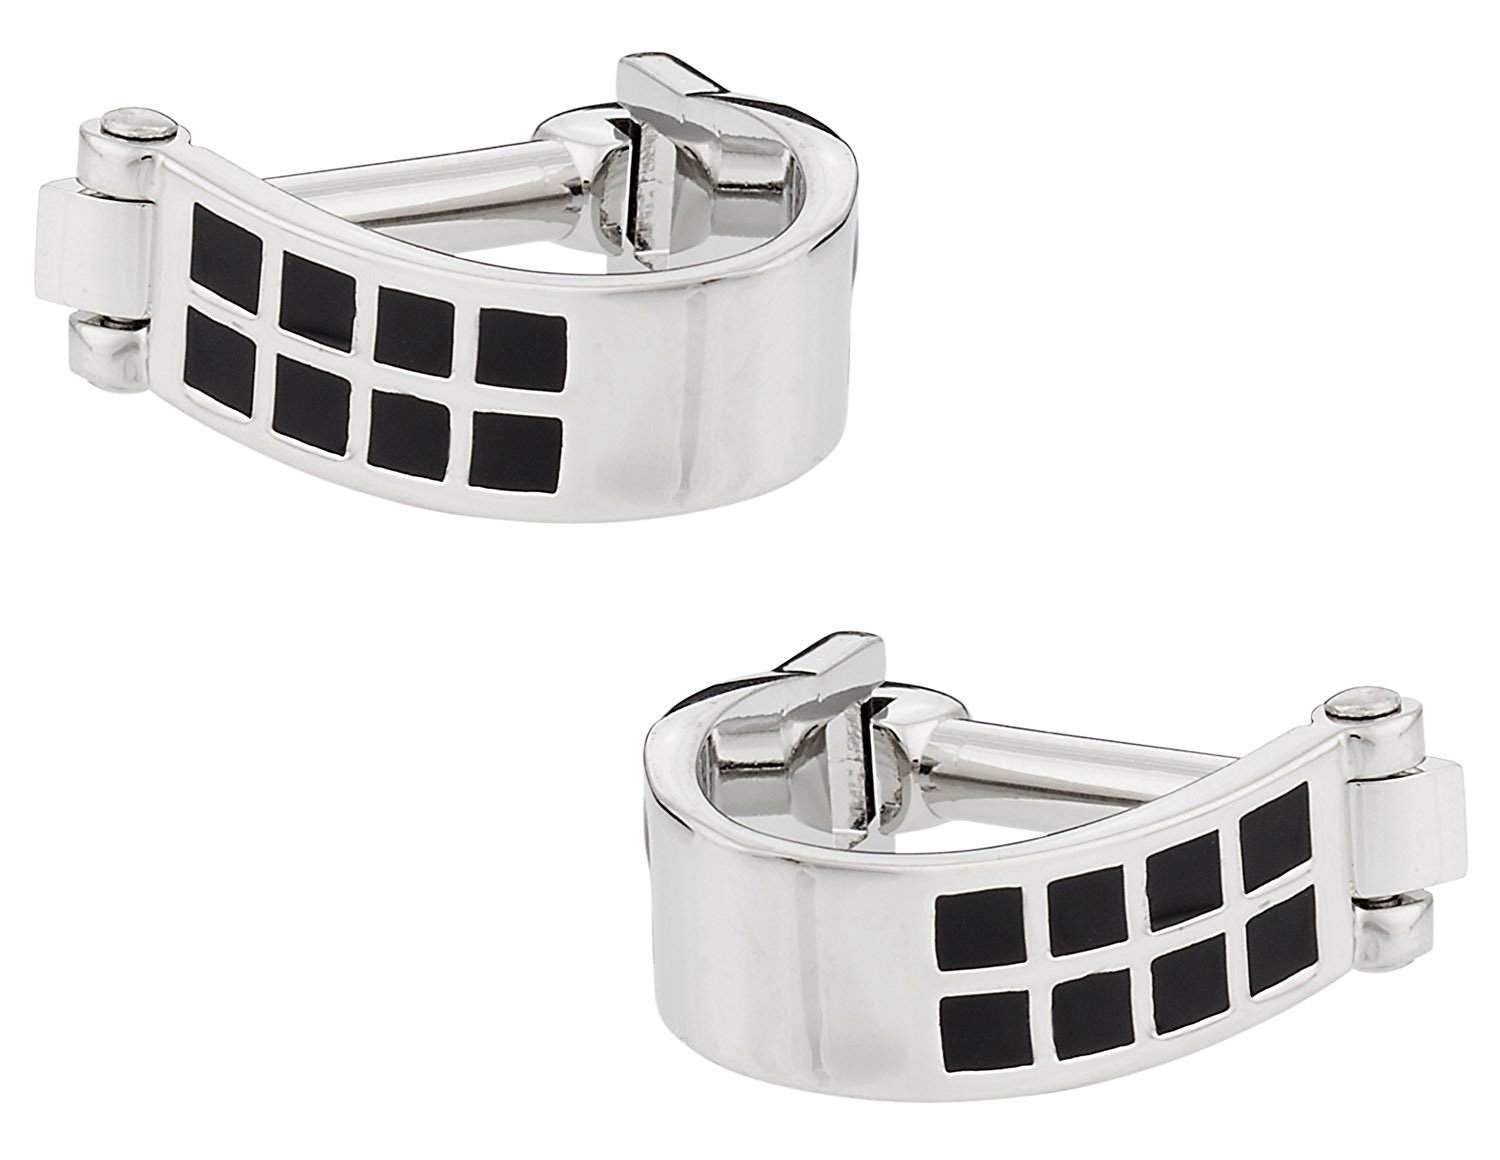 Cuff-Daddy Wrap Around Cufflinks - Silver Black with Presentation Box